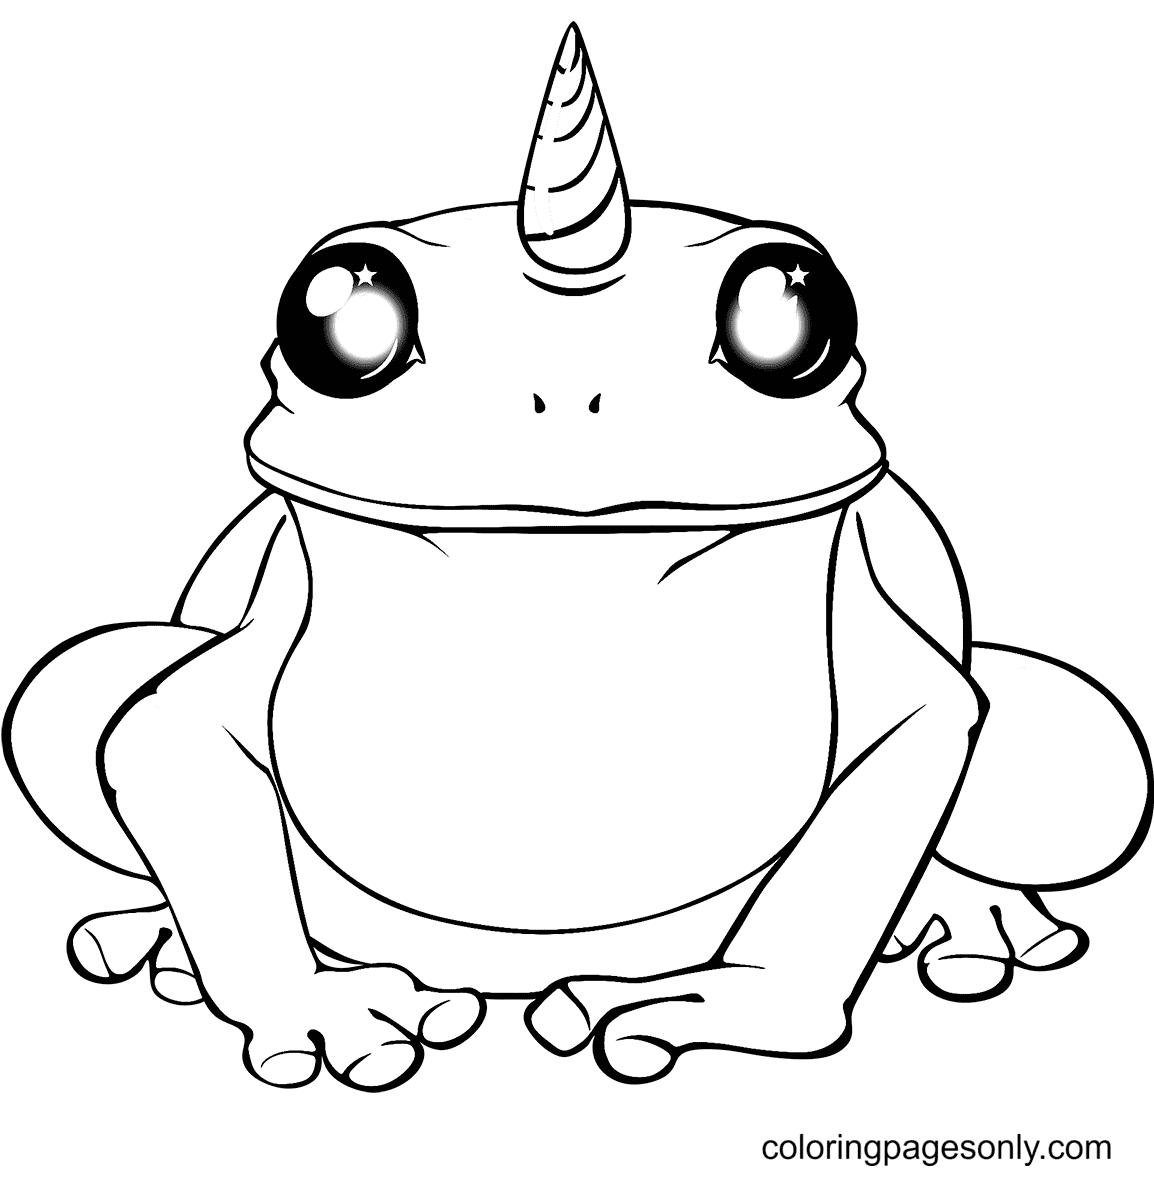 Unicorn Frog Coloring Page